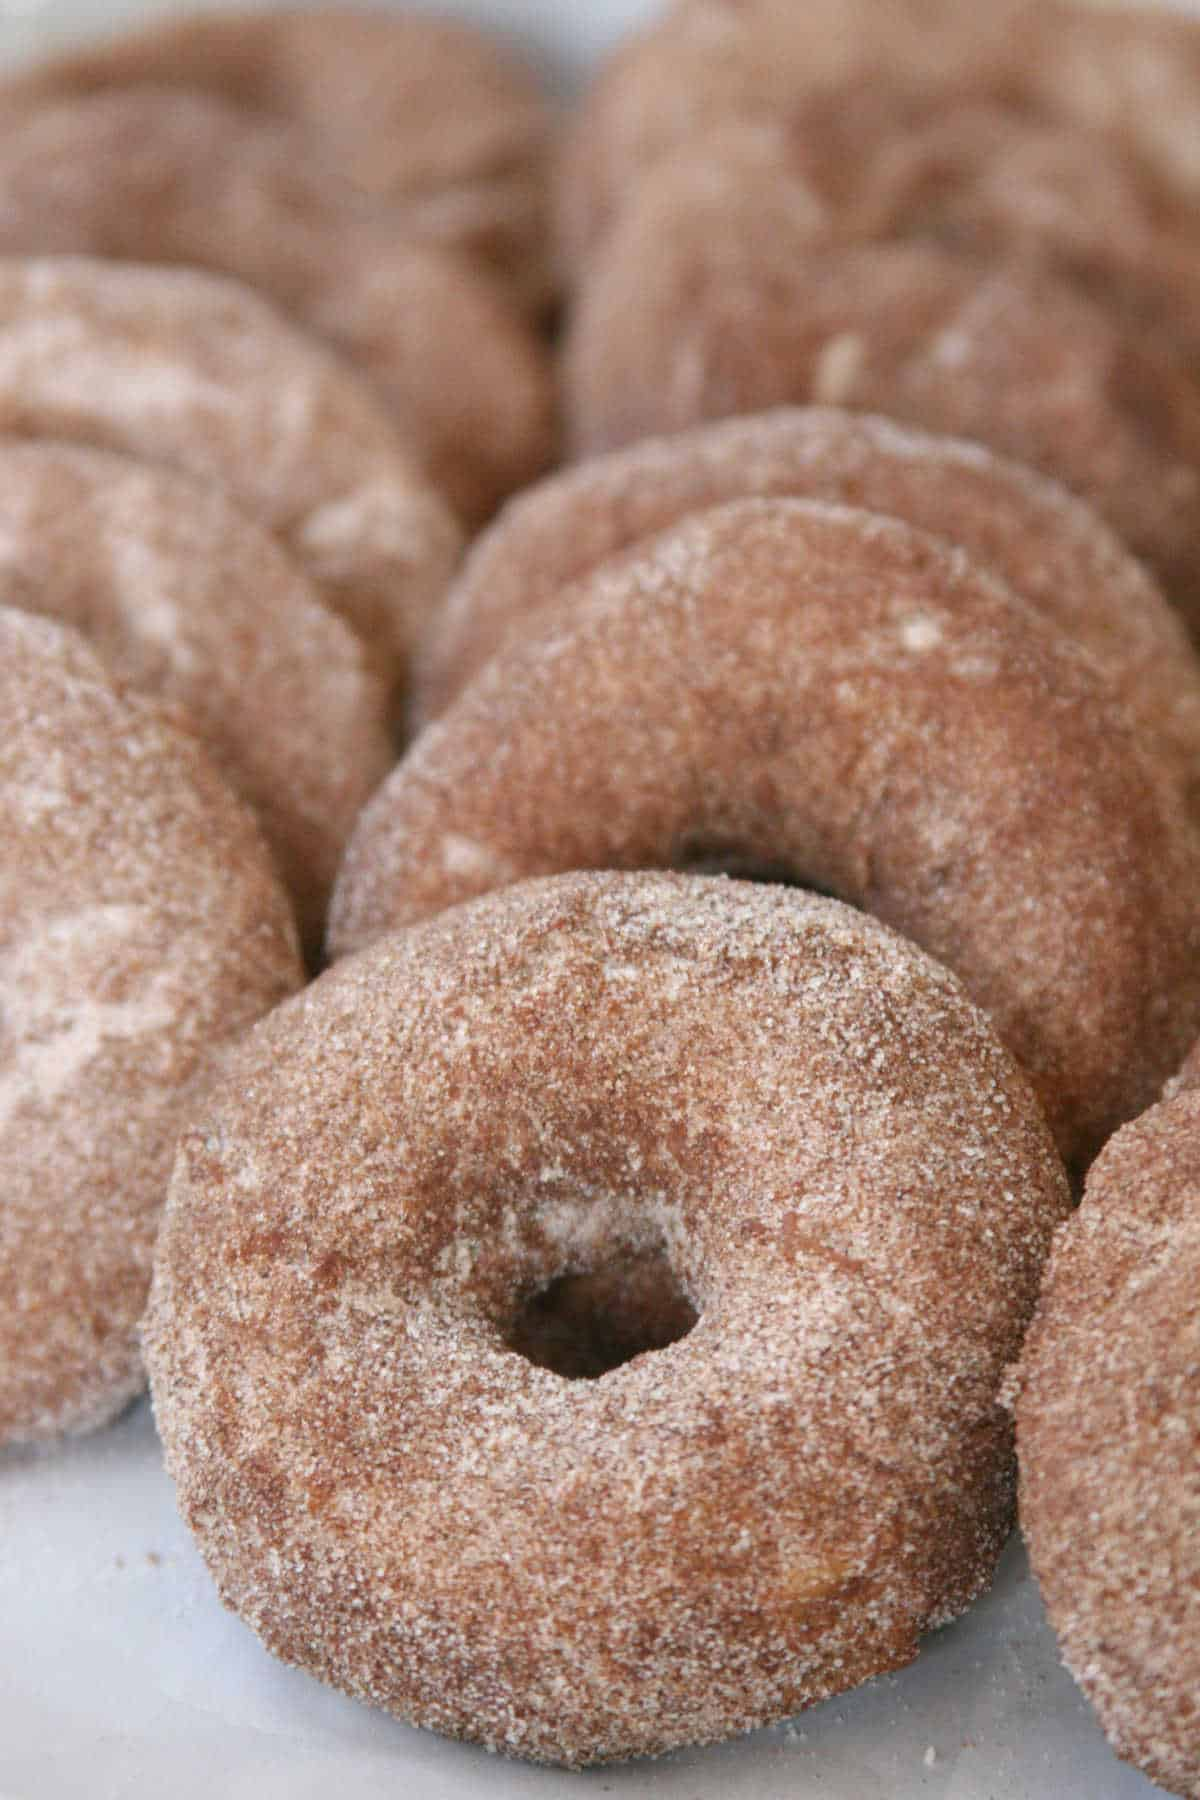 Apple cider donuts lined up against each other on sheet pan lined with parchment paper.